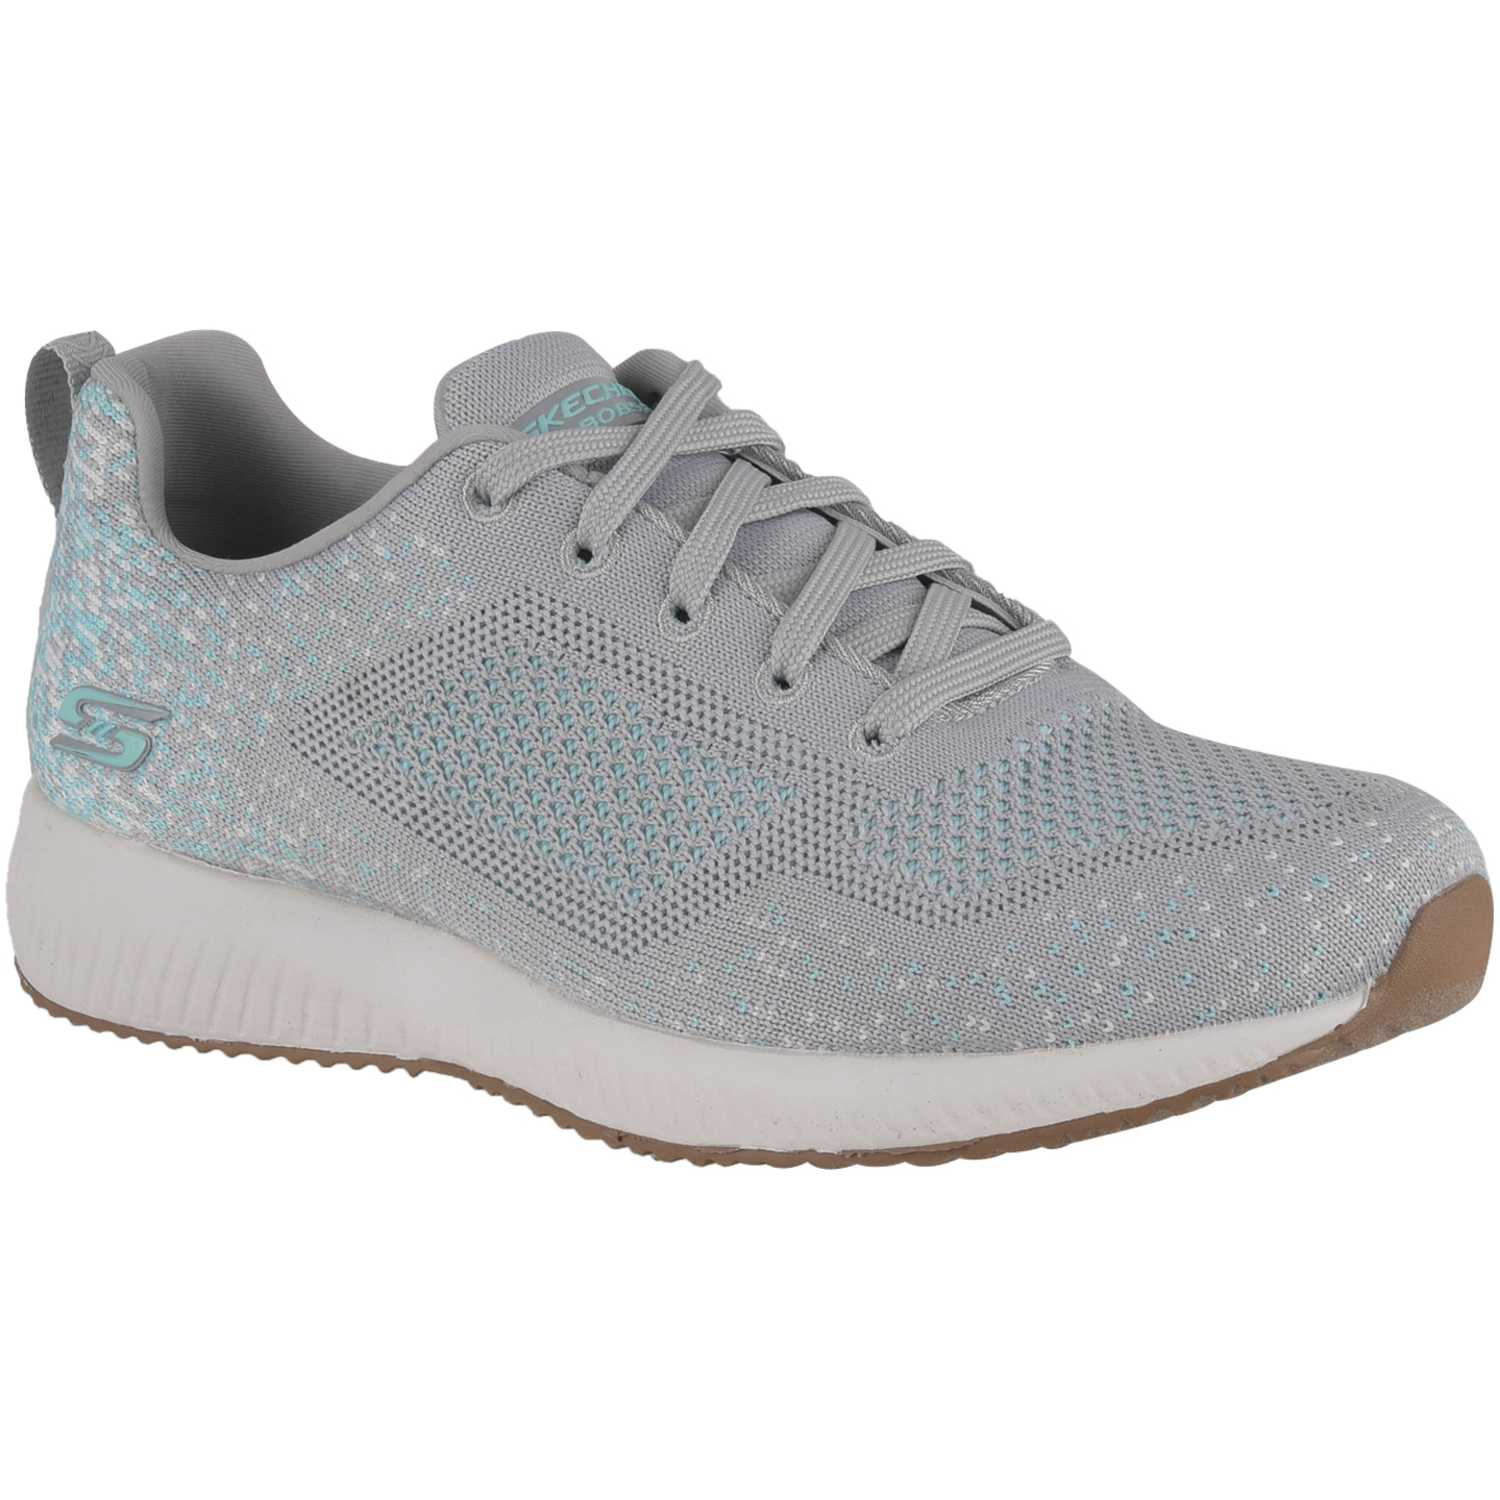 Zapatilla de Mujer Skechers Gris / verde bobs squad - awesome sauce